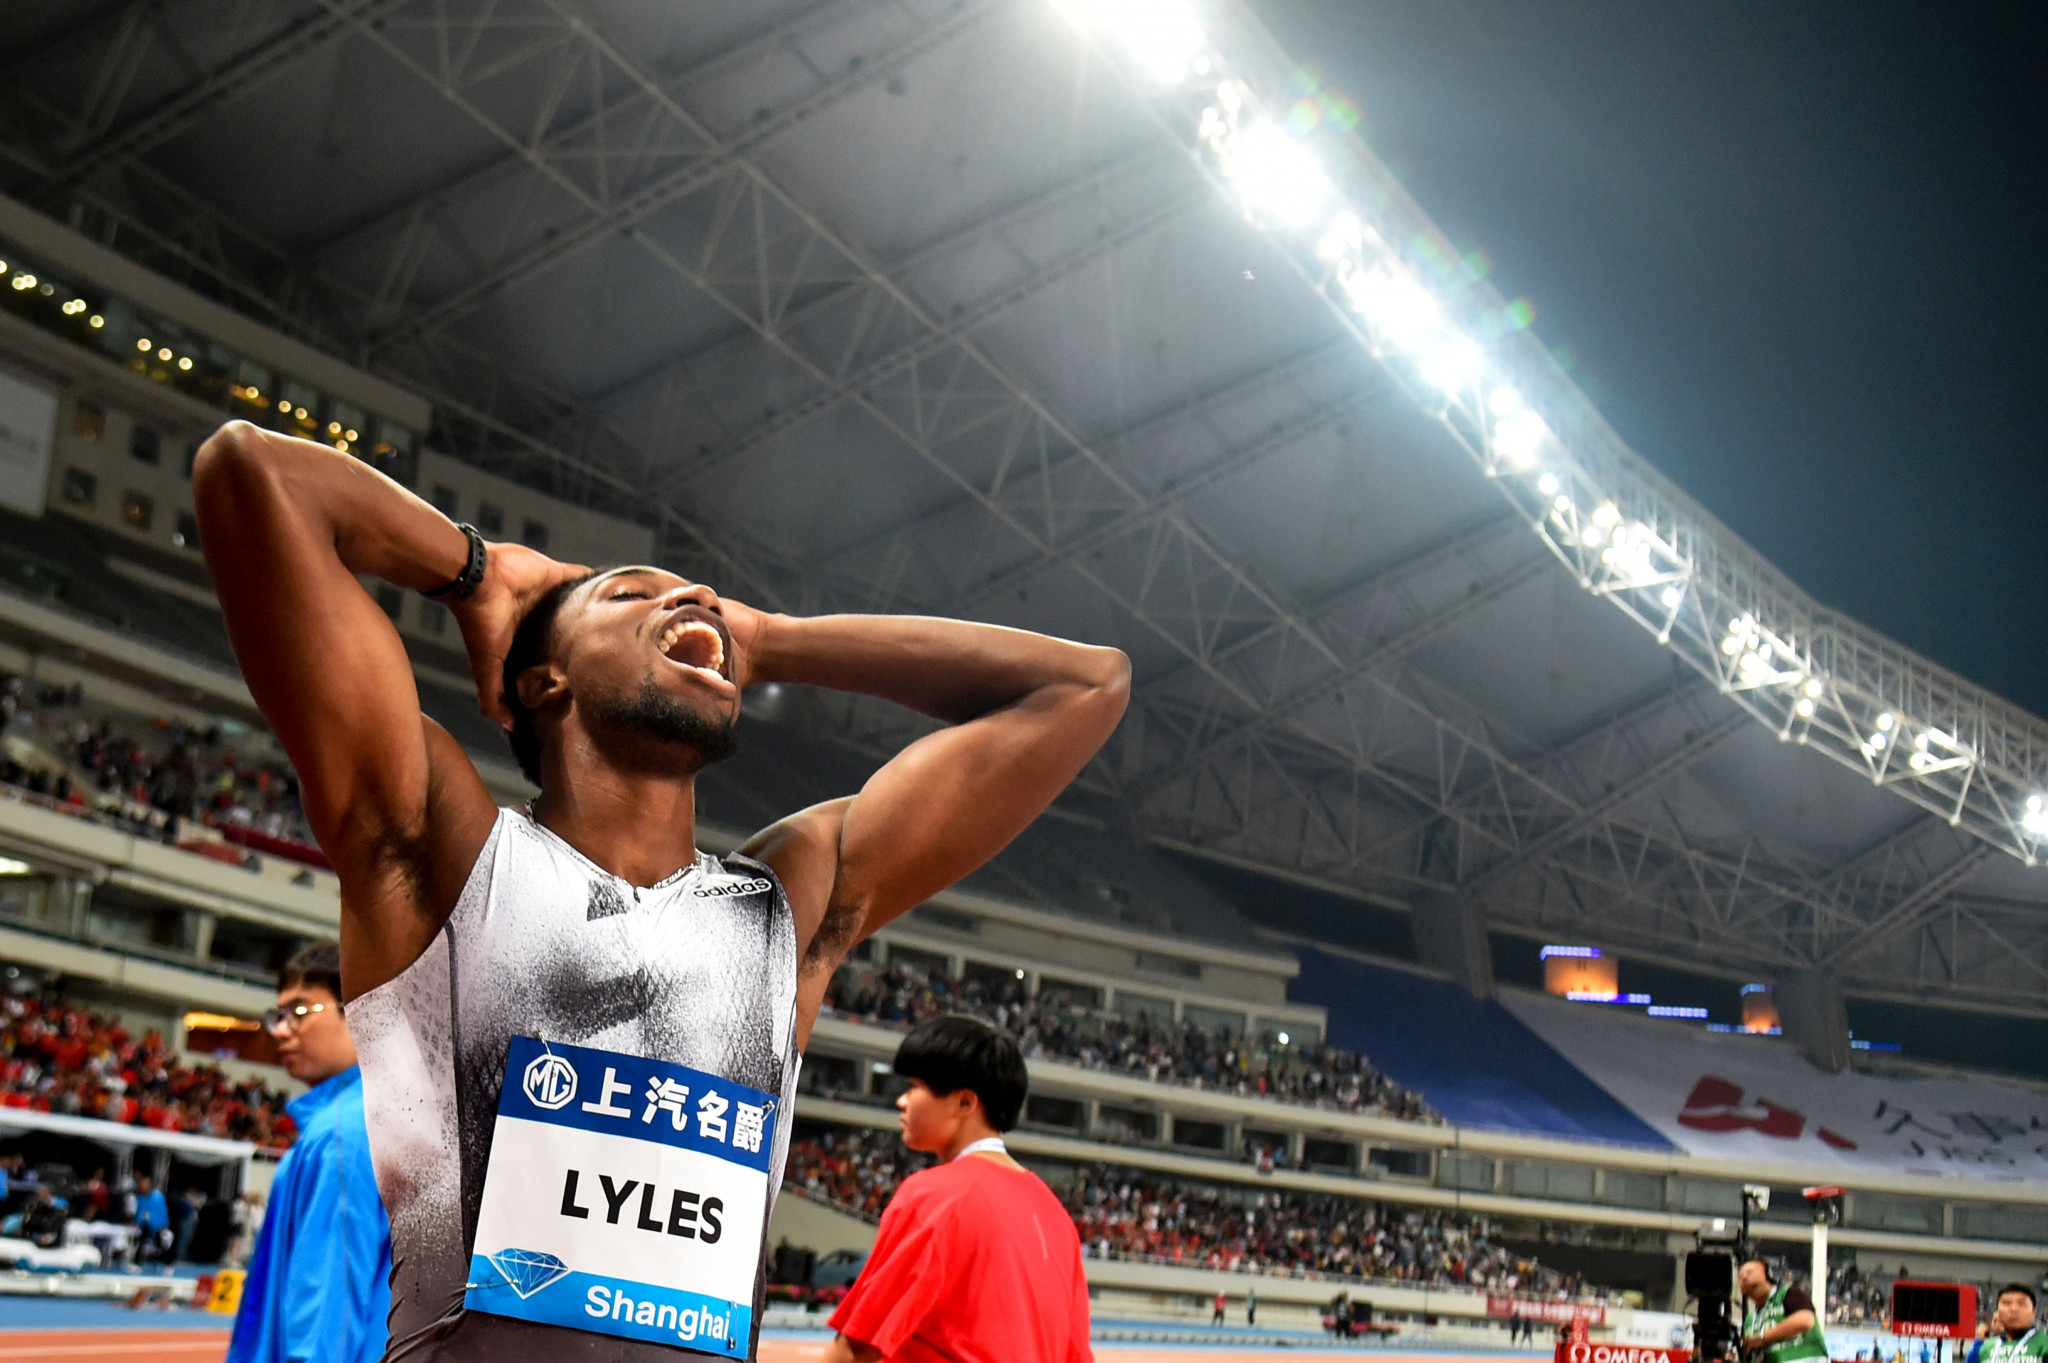 Shanghai Diamond League event cancelled after China's suspension of international events